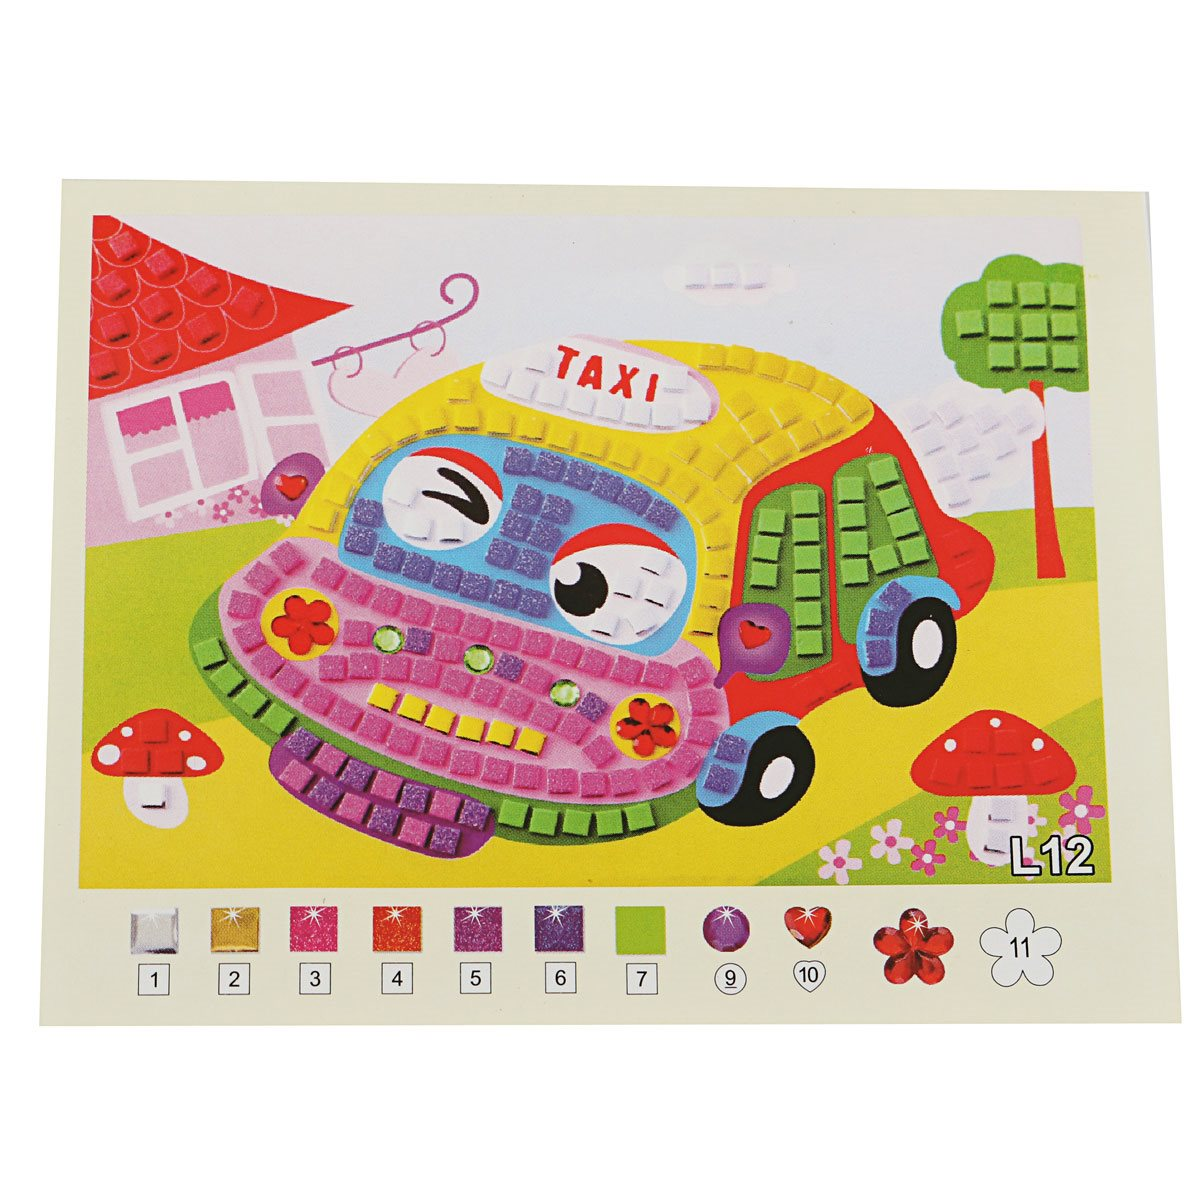 3d eva foam cartoon car mosaics art stickers painting children kids game multicolor puzzle diy handmade - Preschool Painting Games